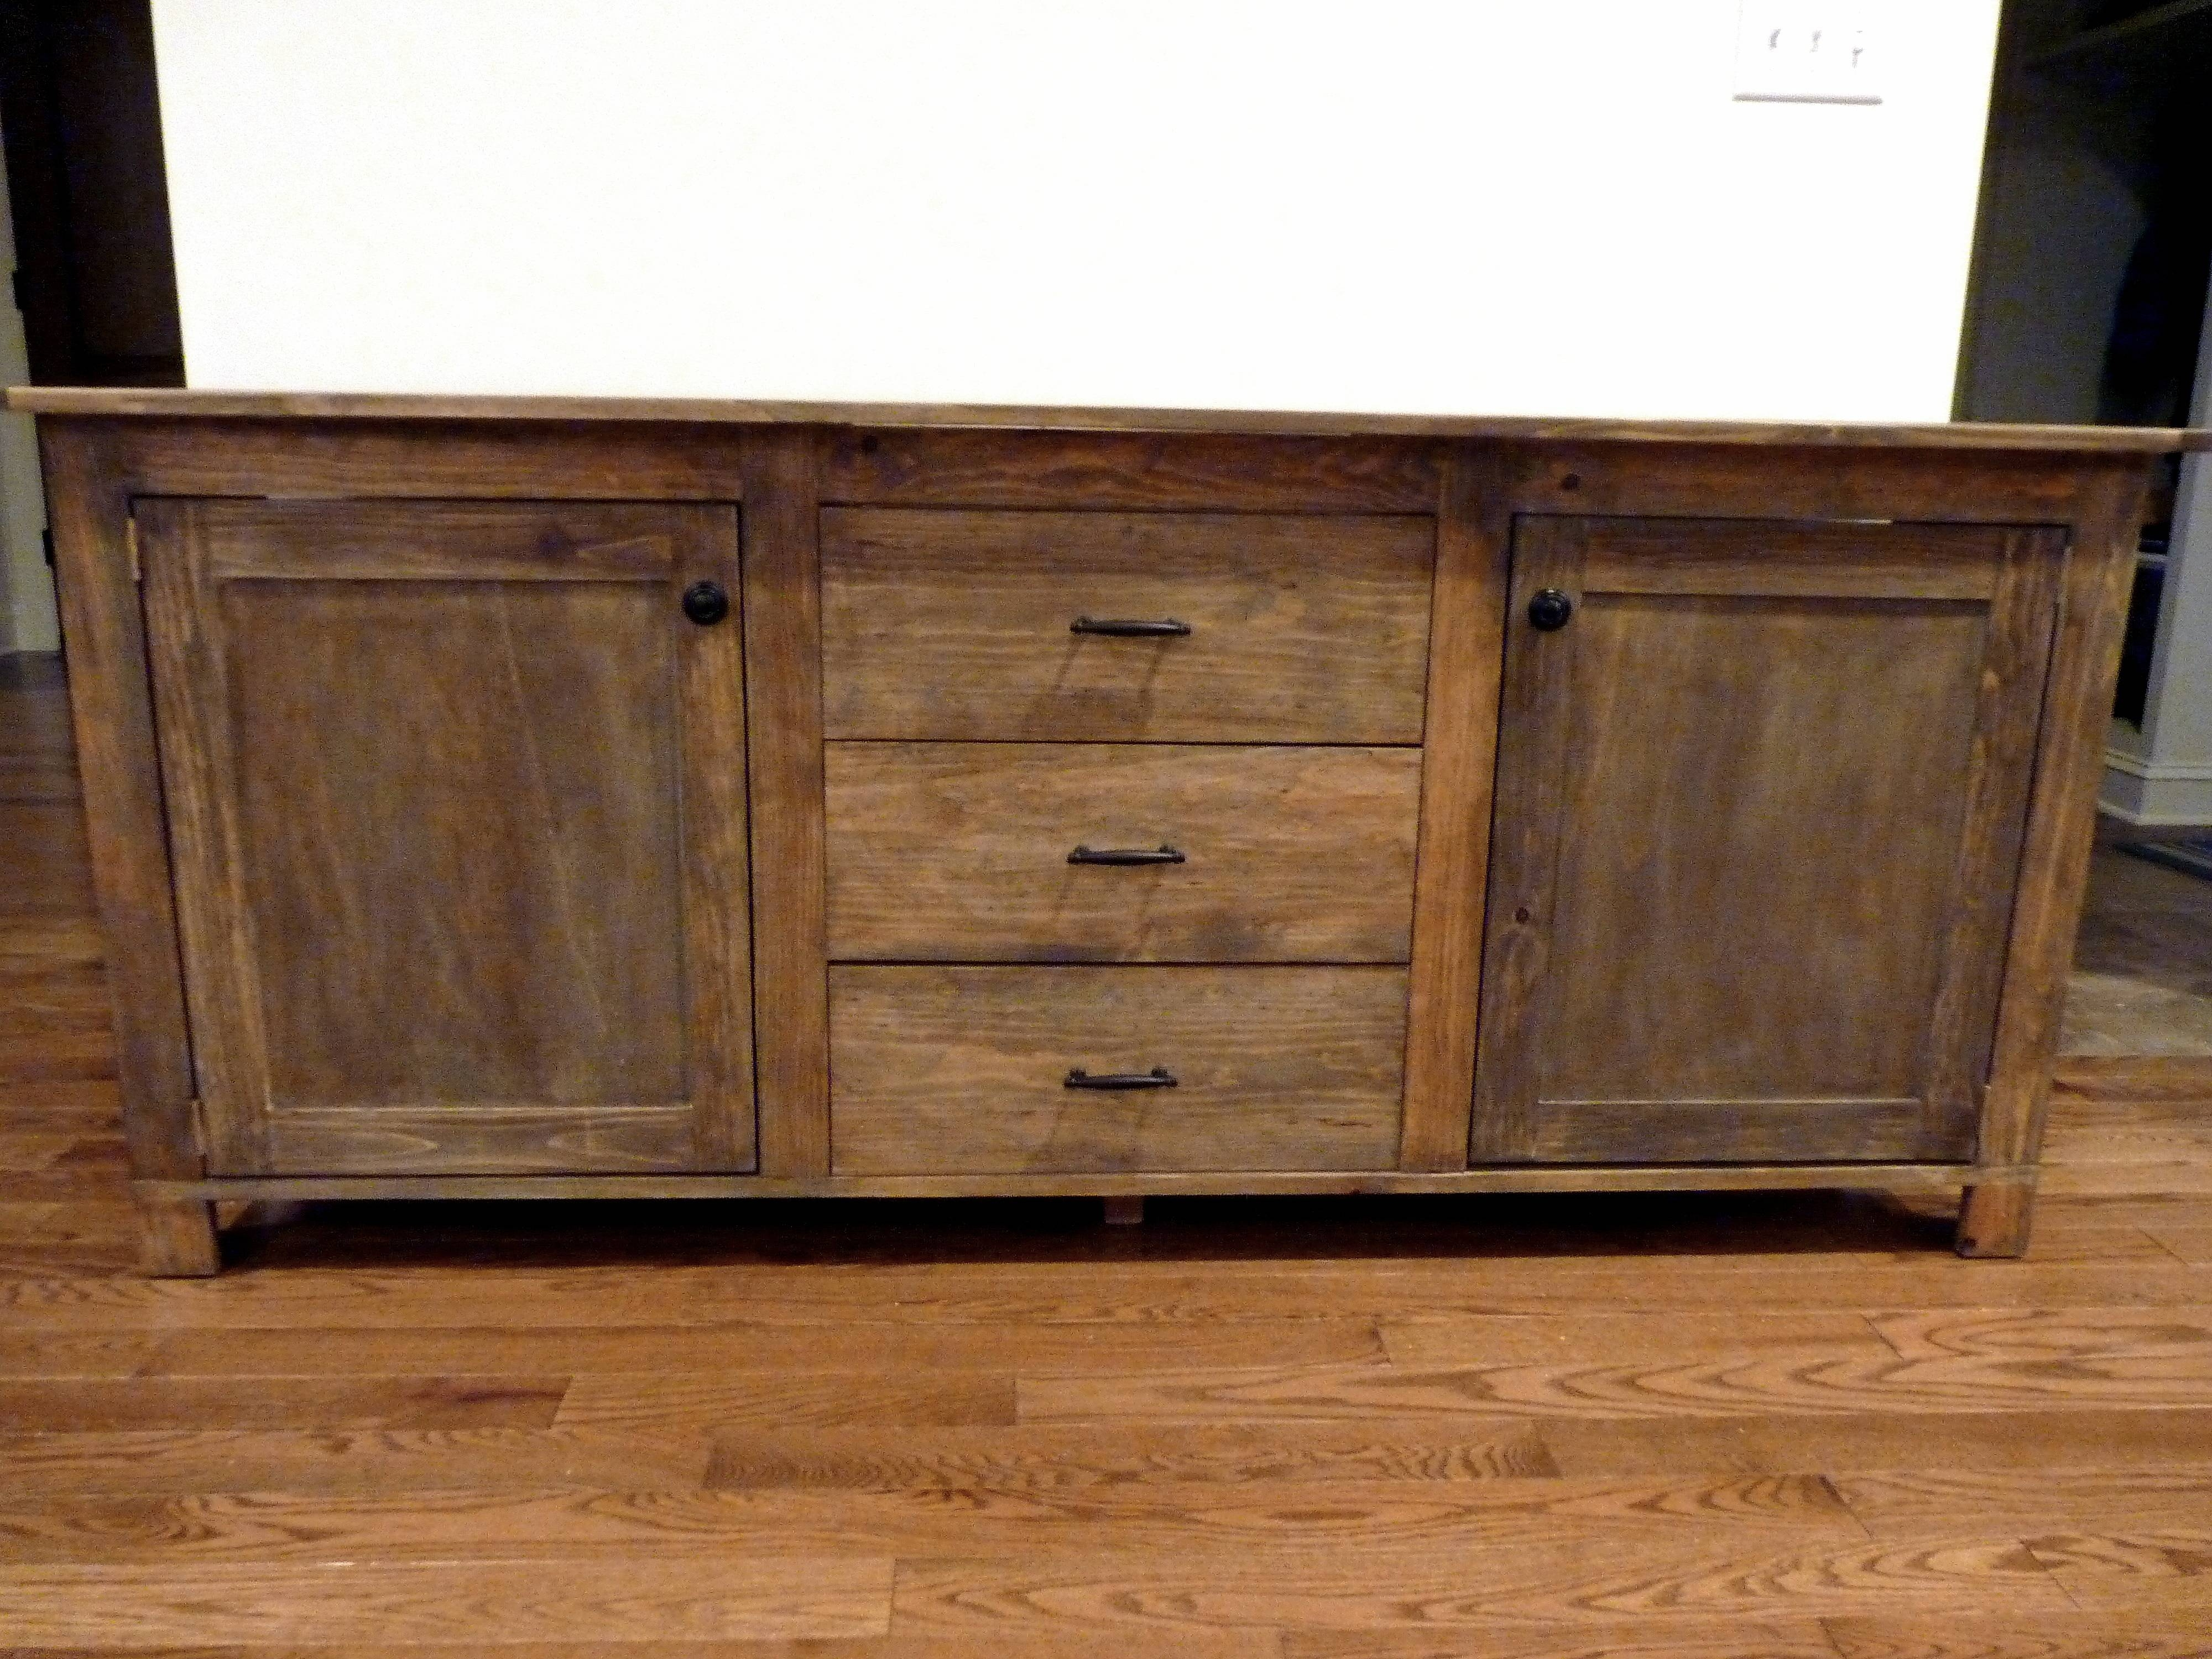 Ana White | Rustic Sideboard - Diy Projects intended for Rustic Sideboard Furniture (Image 2 of 15)